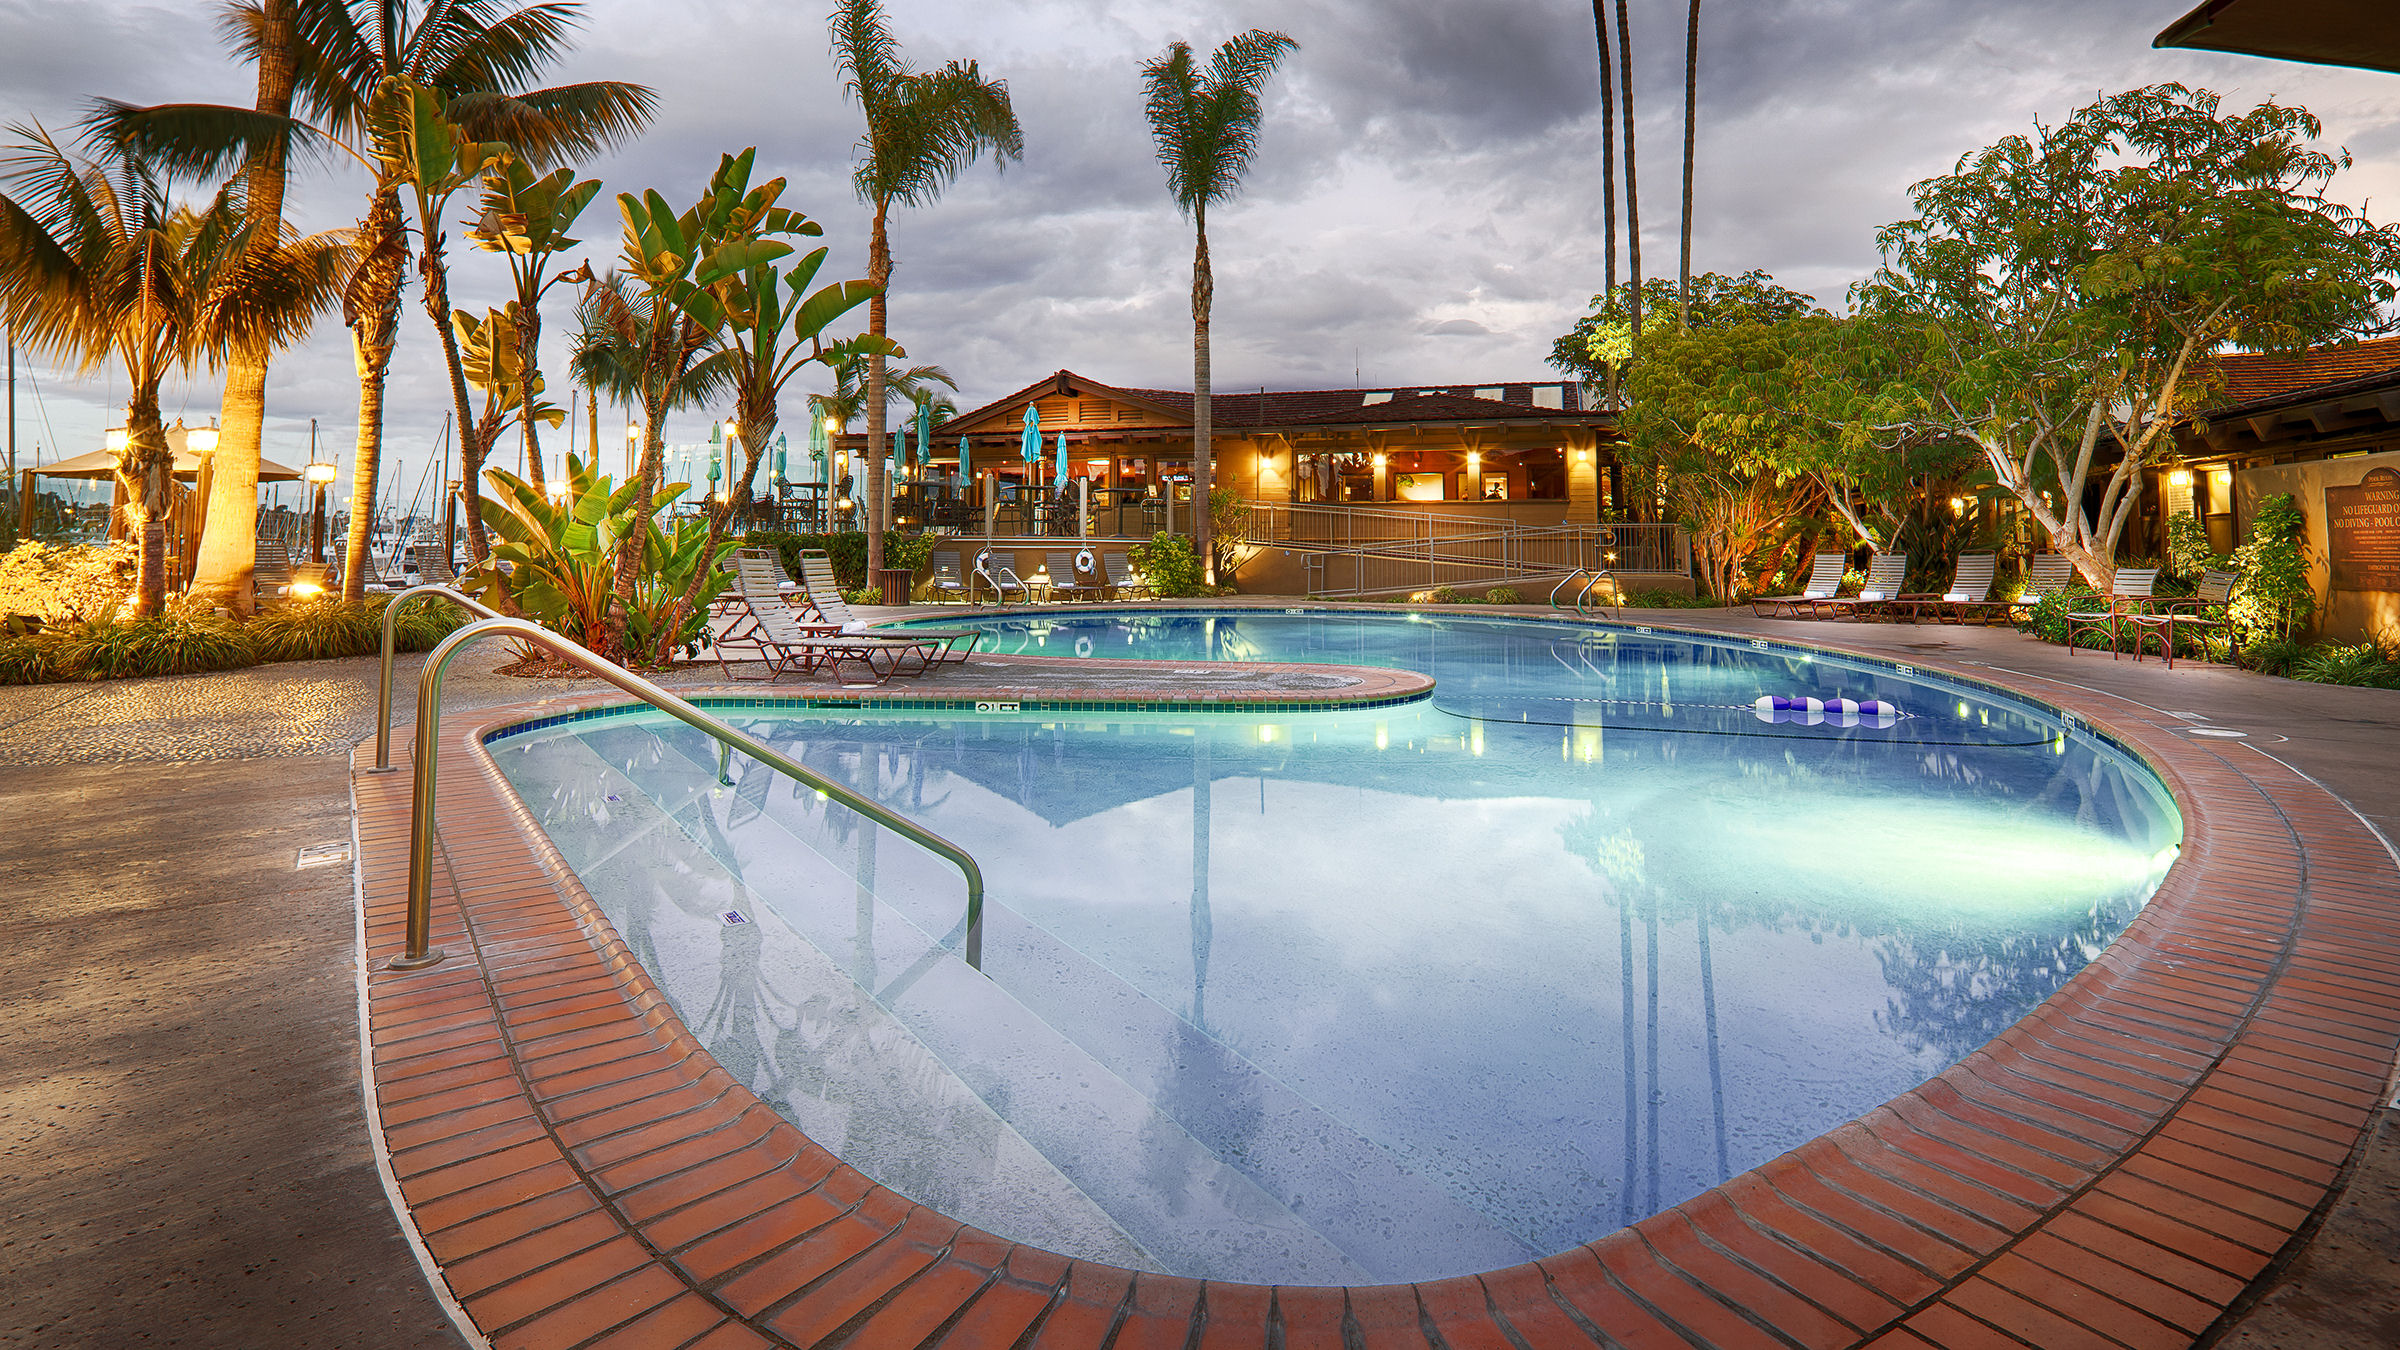 Best Western Island Palms, Shelter Island, San Diego, 1 Bedroom